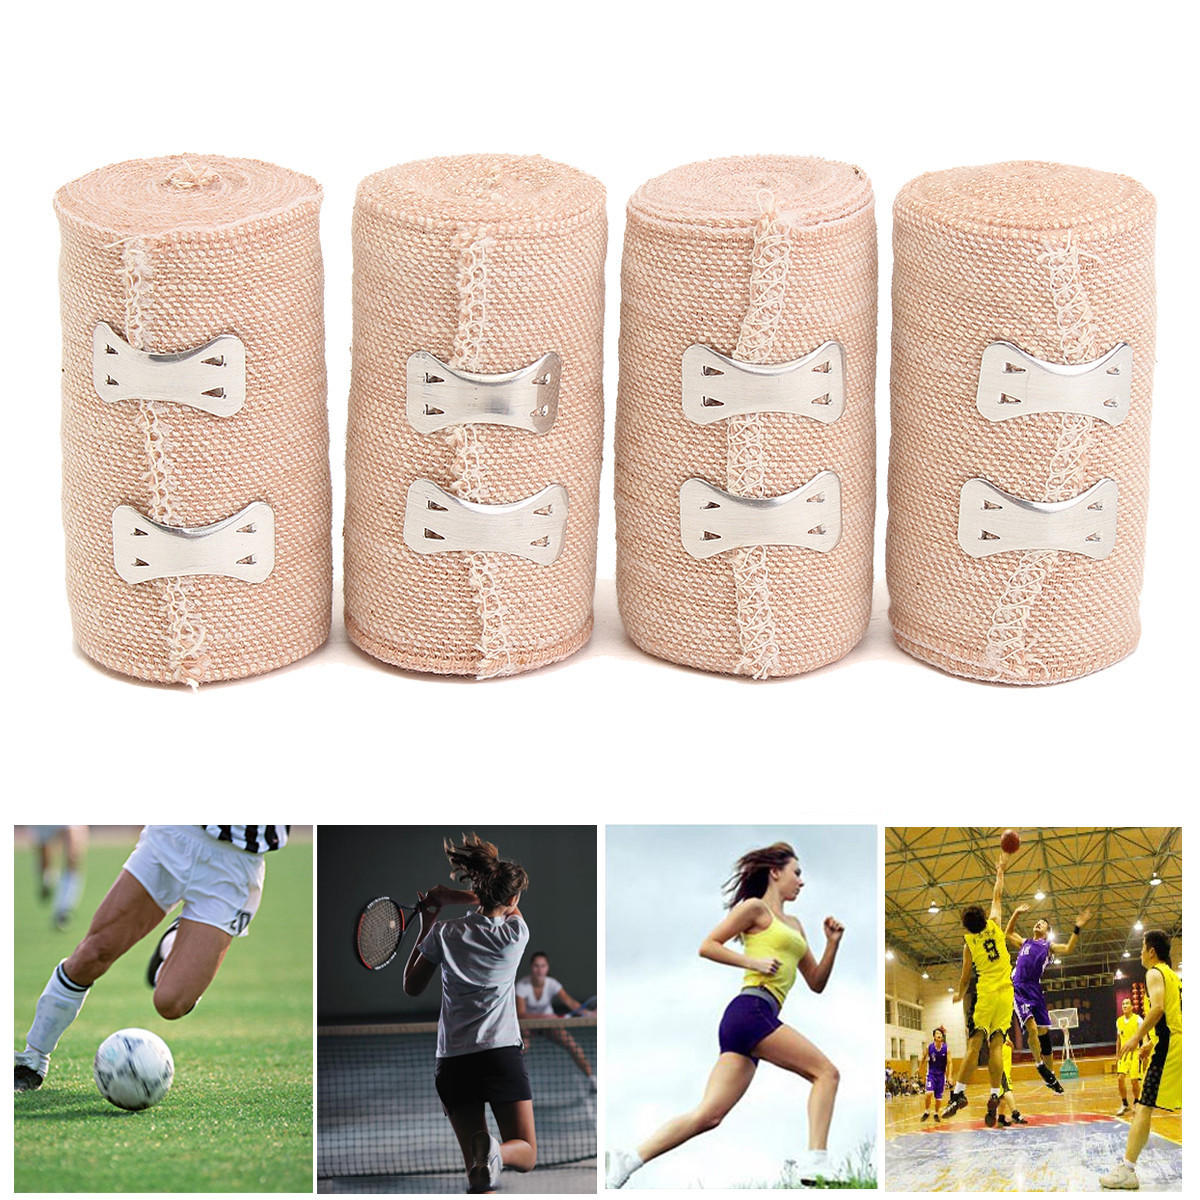 4 Rolls 15ft Crepe Bandage Hook Closure Rubber Elastic Bandages 5 Yds 4.5M First Aid Emergency Kits Treatment